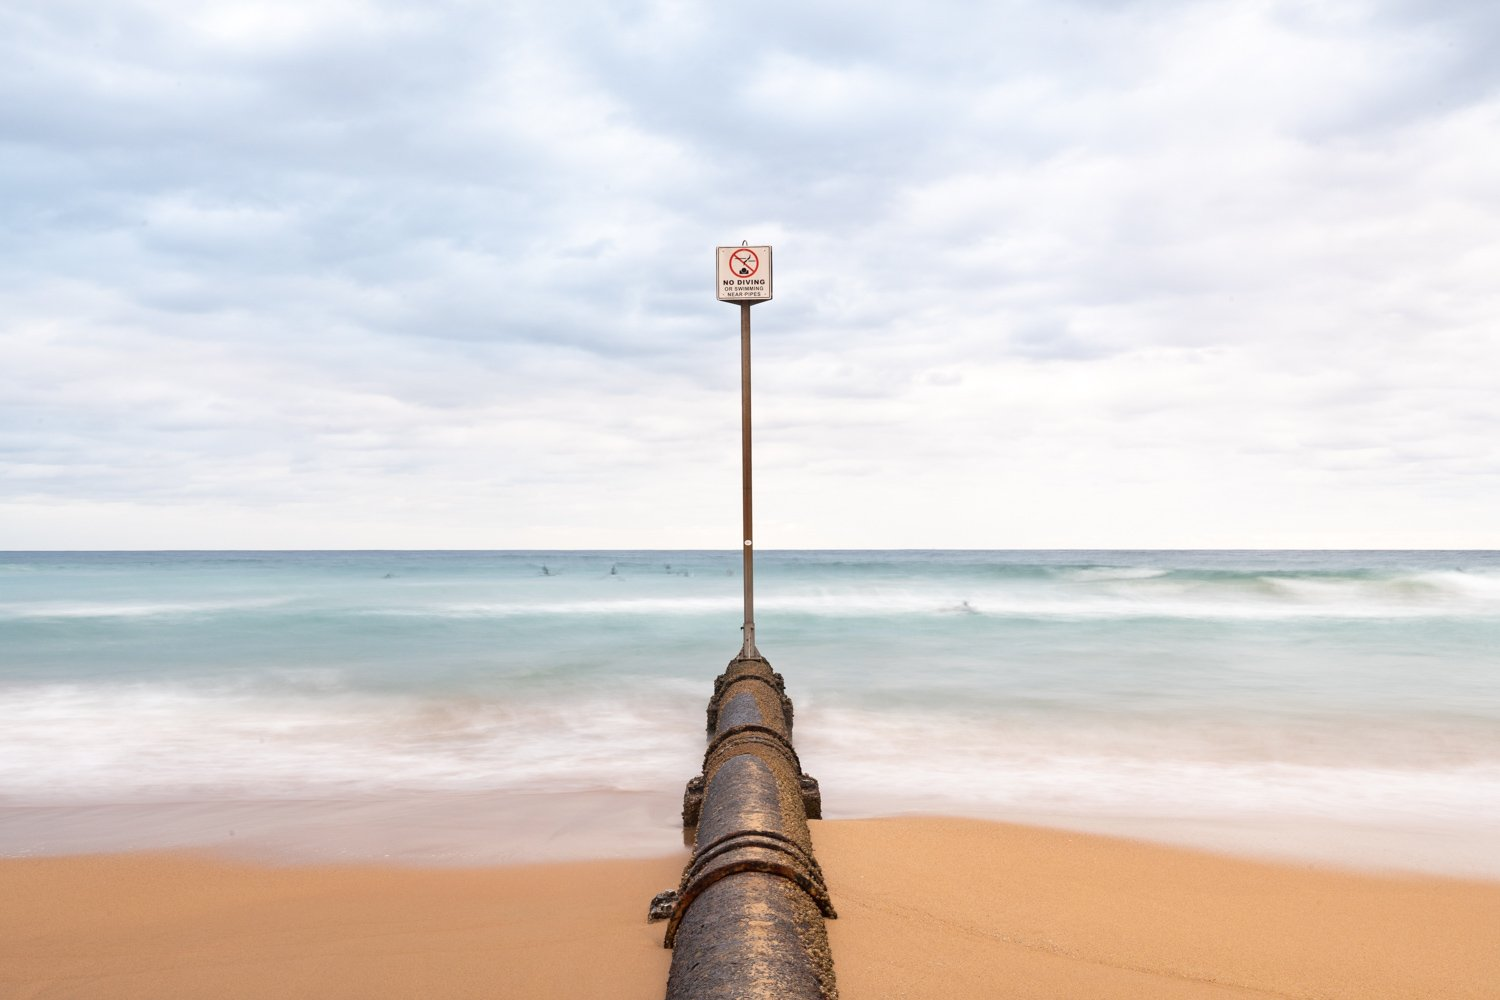 No diving sign and pipe in sea at Manly Beach NSW